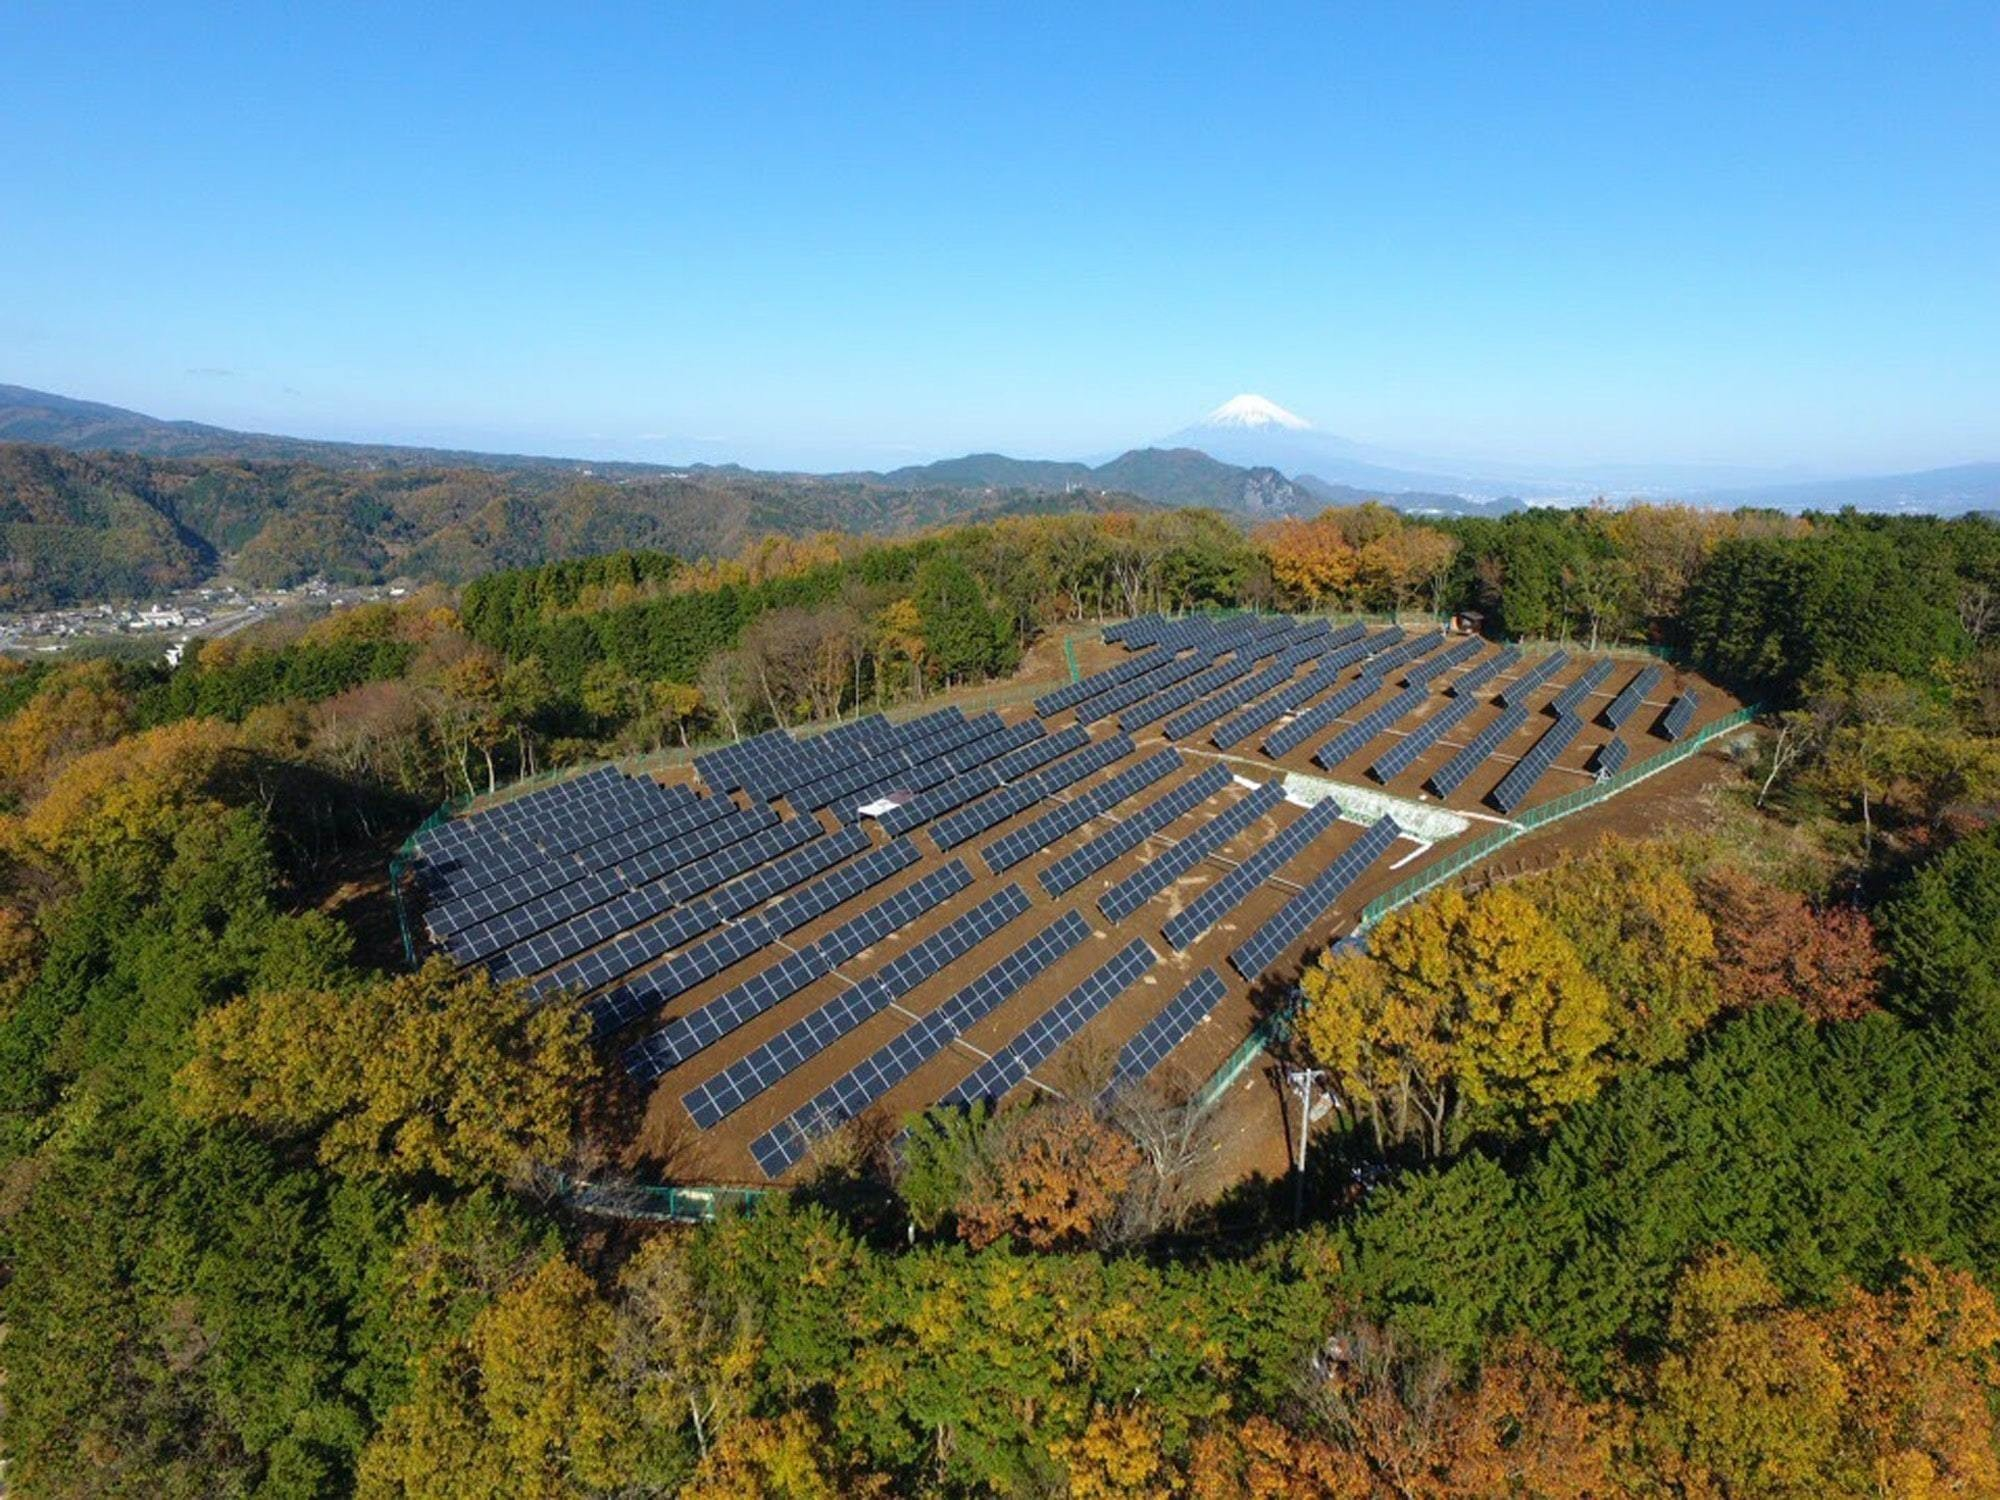 Renewable energy, such as this solar plant in Japan, will become mainstream as the country aims to become net-zero by 2050.